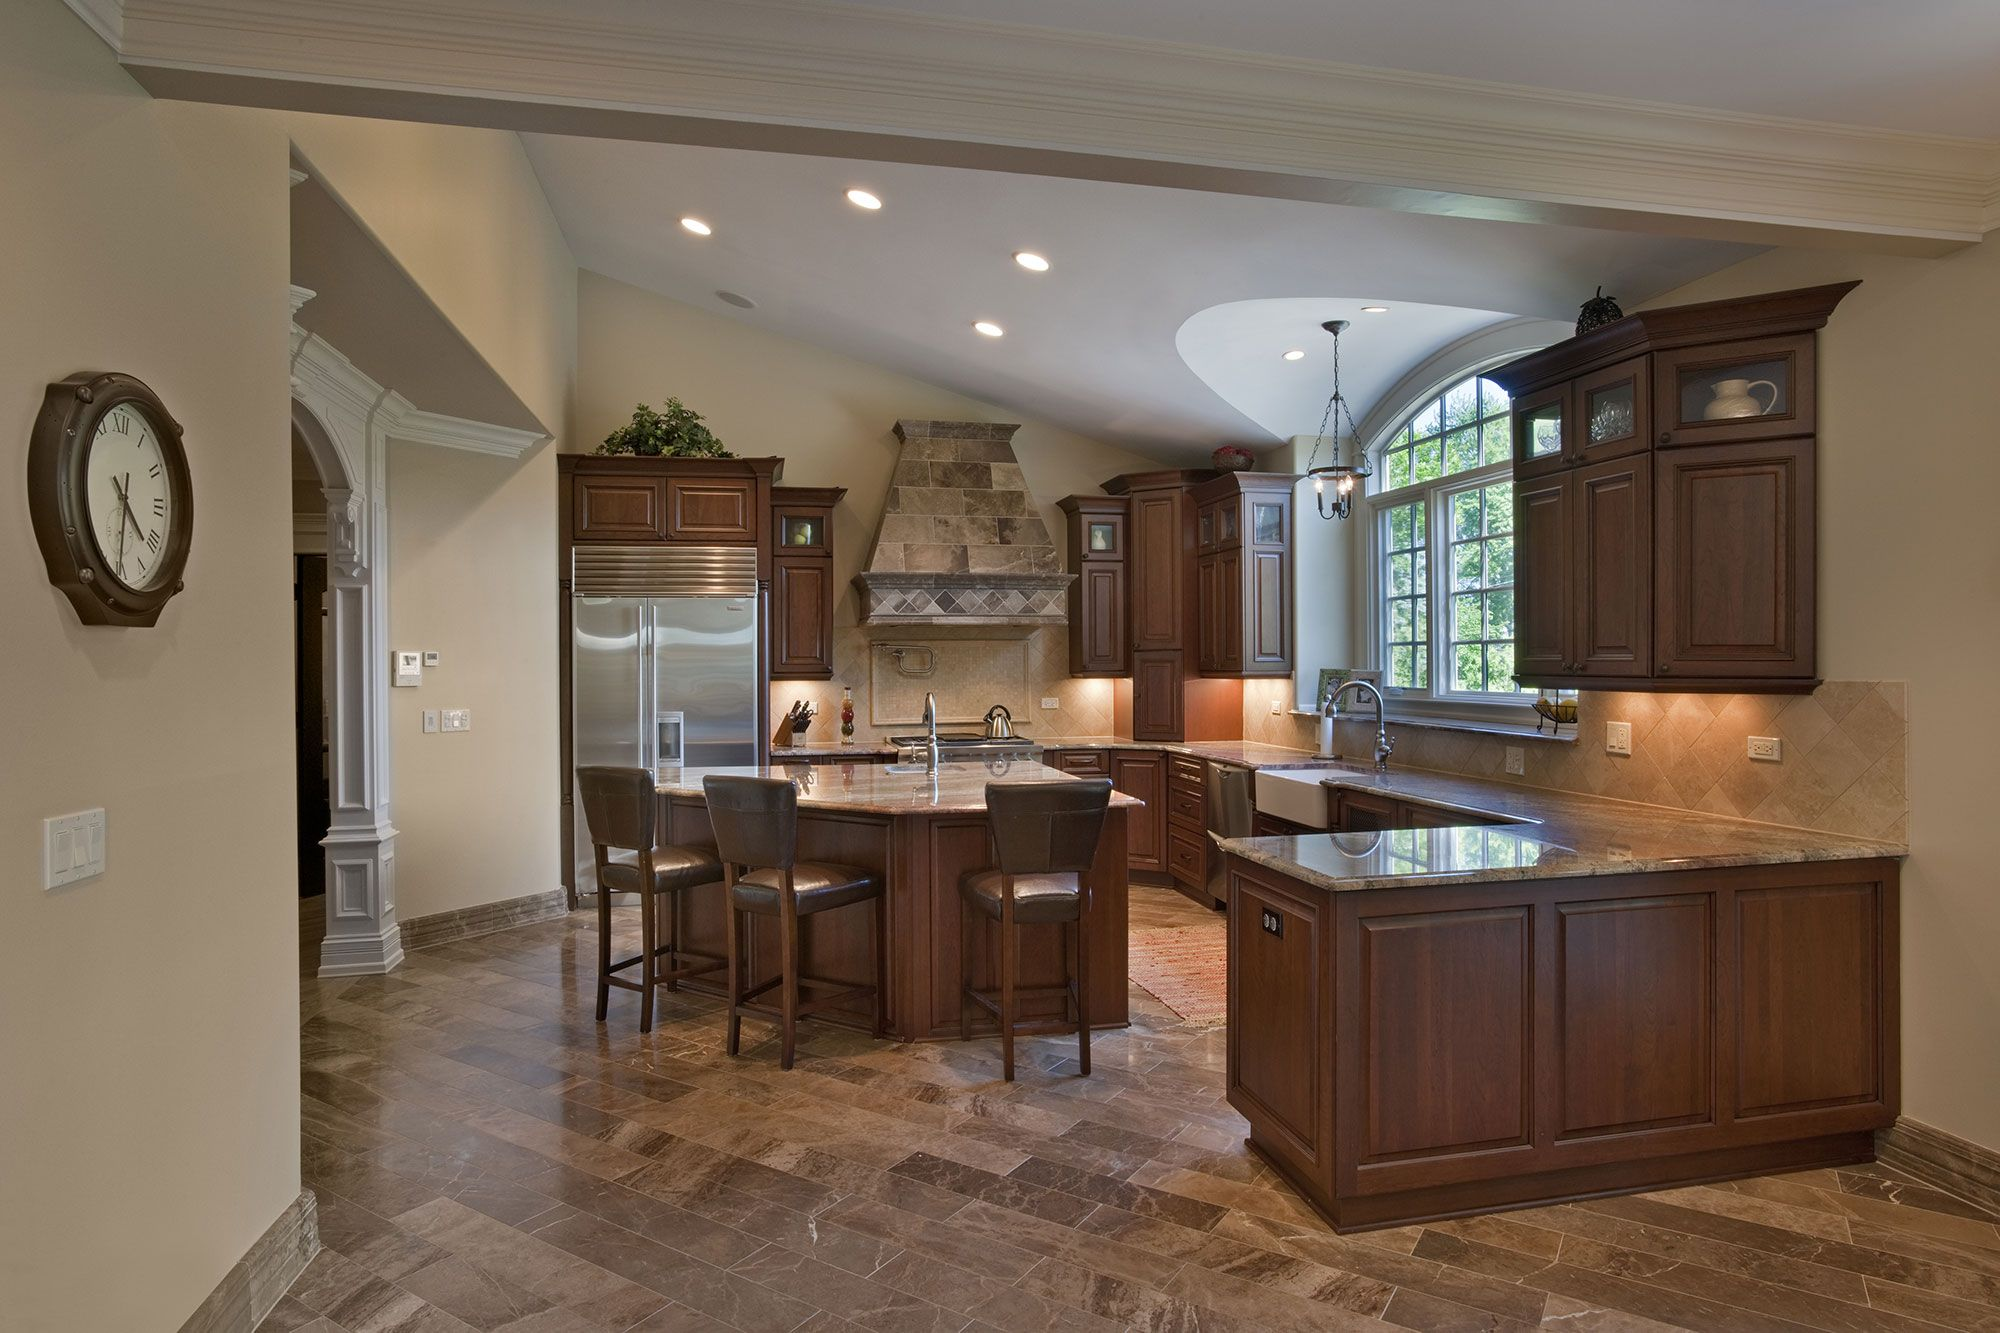 Designer kitchen s and bath slideshow image - Cherry Slideshow Kitchen Cabinets Bathroom Vanity Cabinets